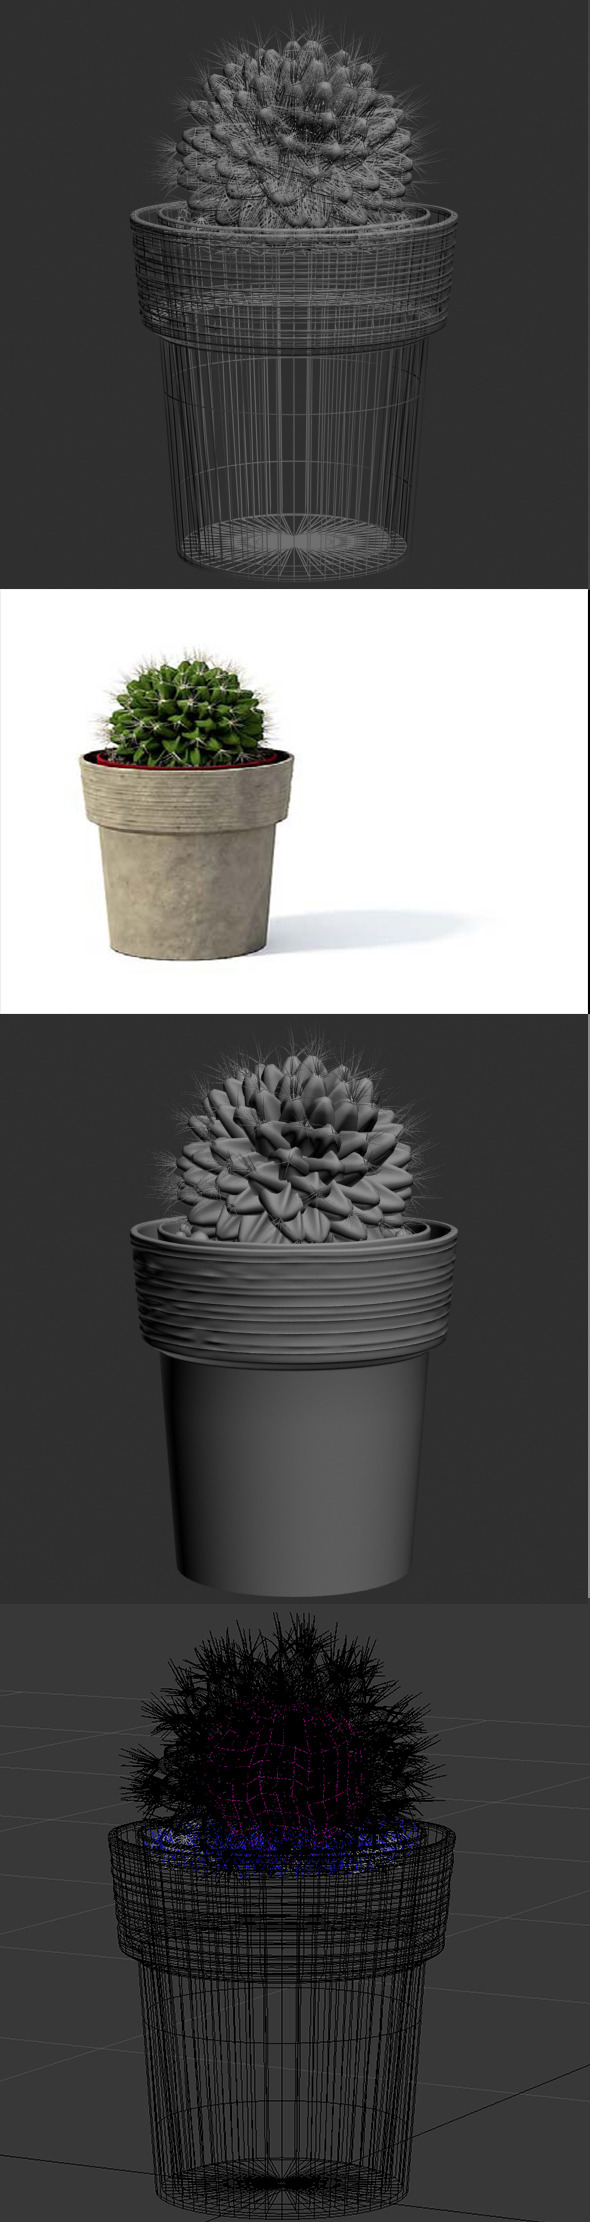 3D Cactus pot plant model 2 - 3DOcean Item for Sale